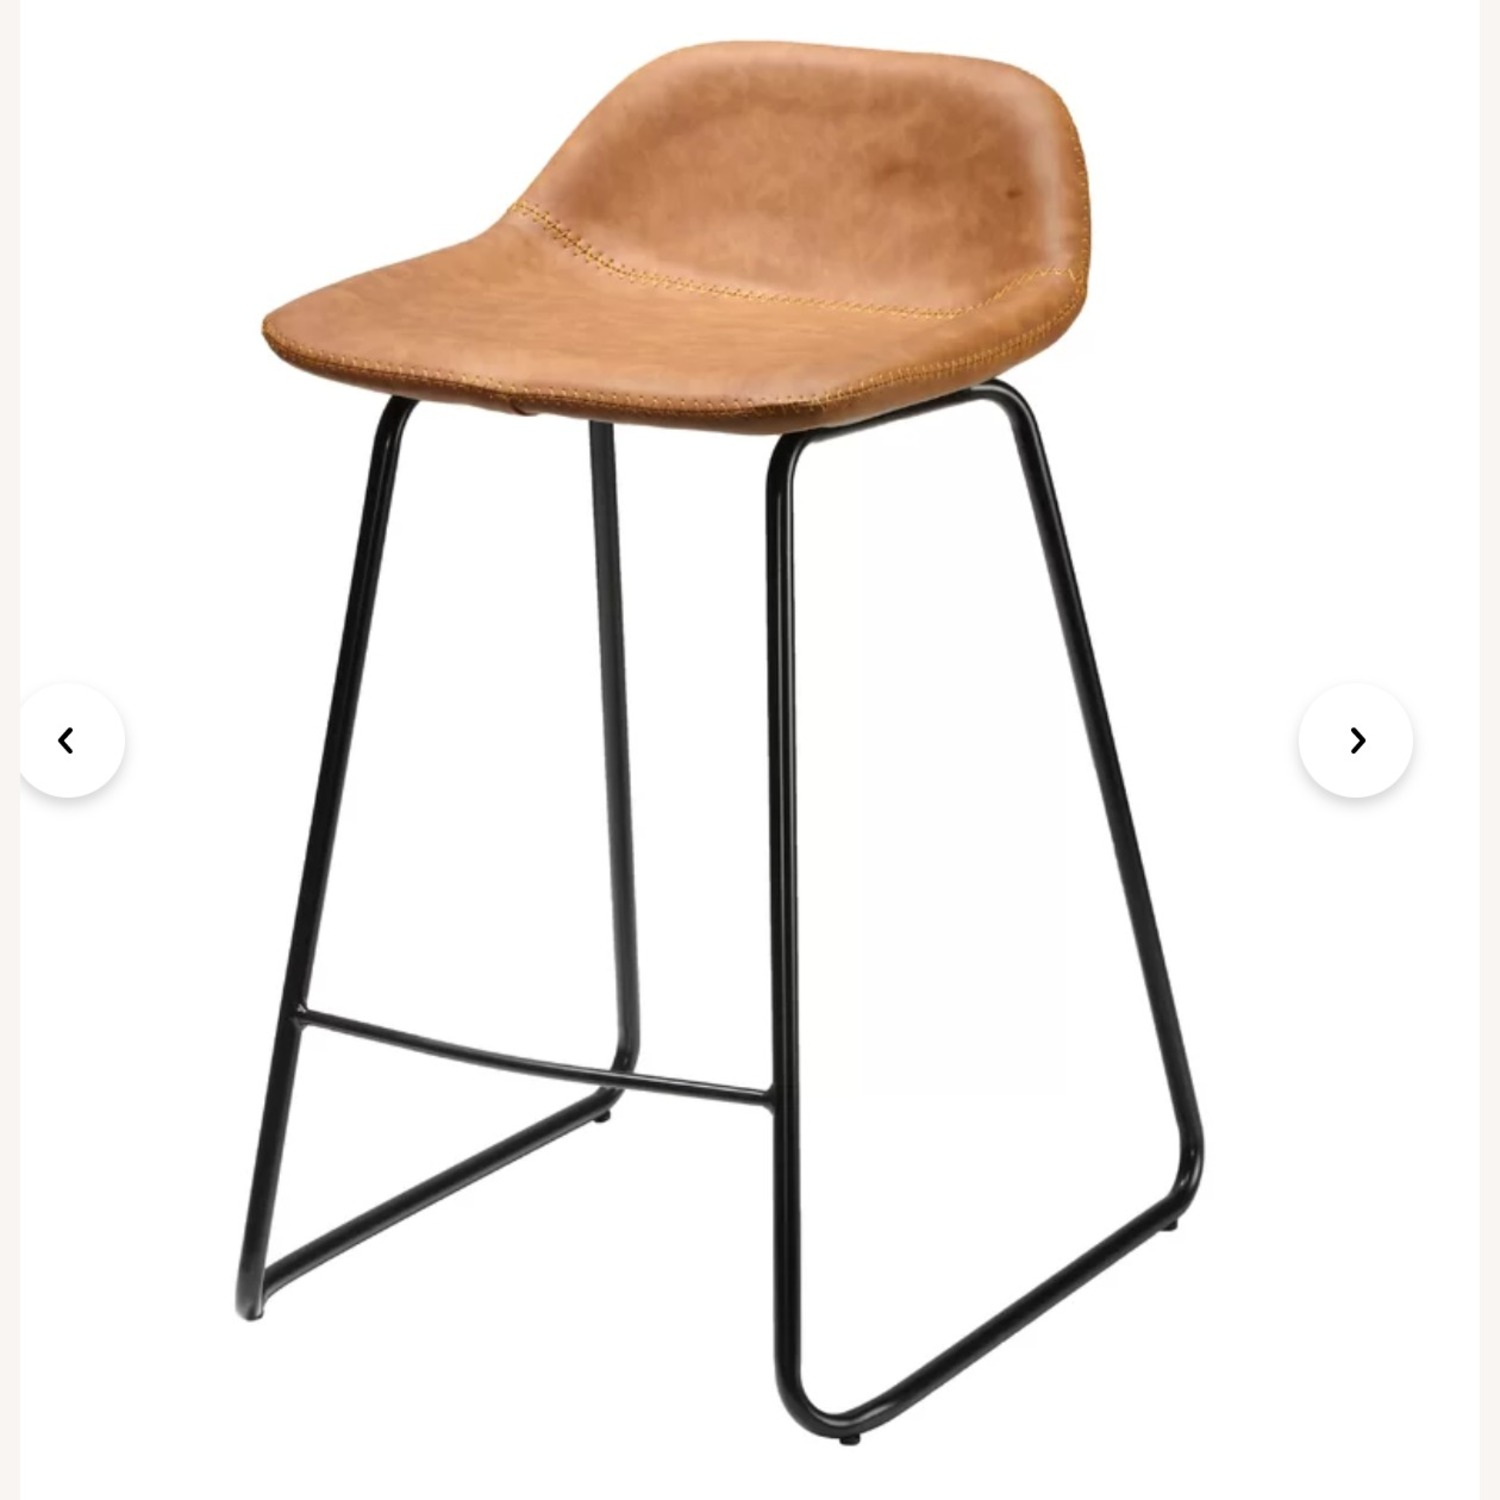 Wayfair Leather Bar Stools (2) Counter Height - image-1